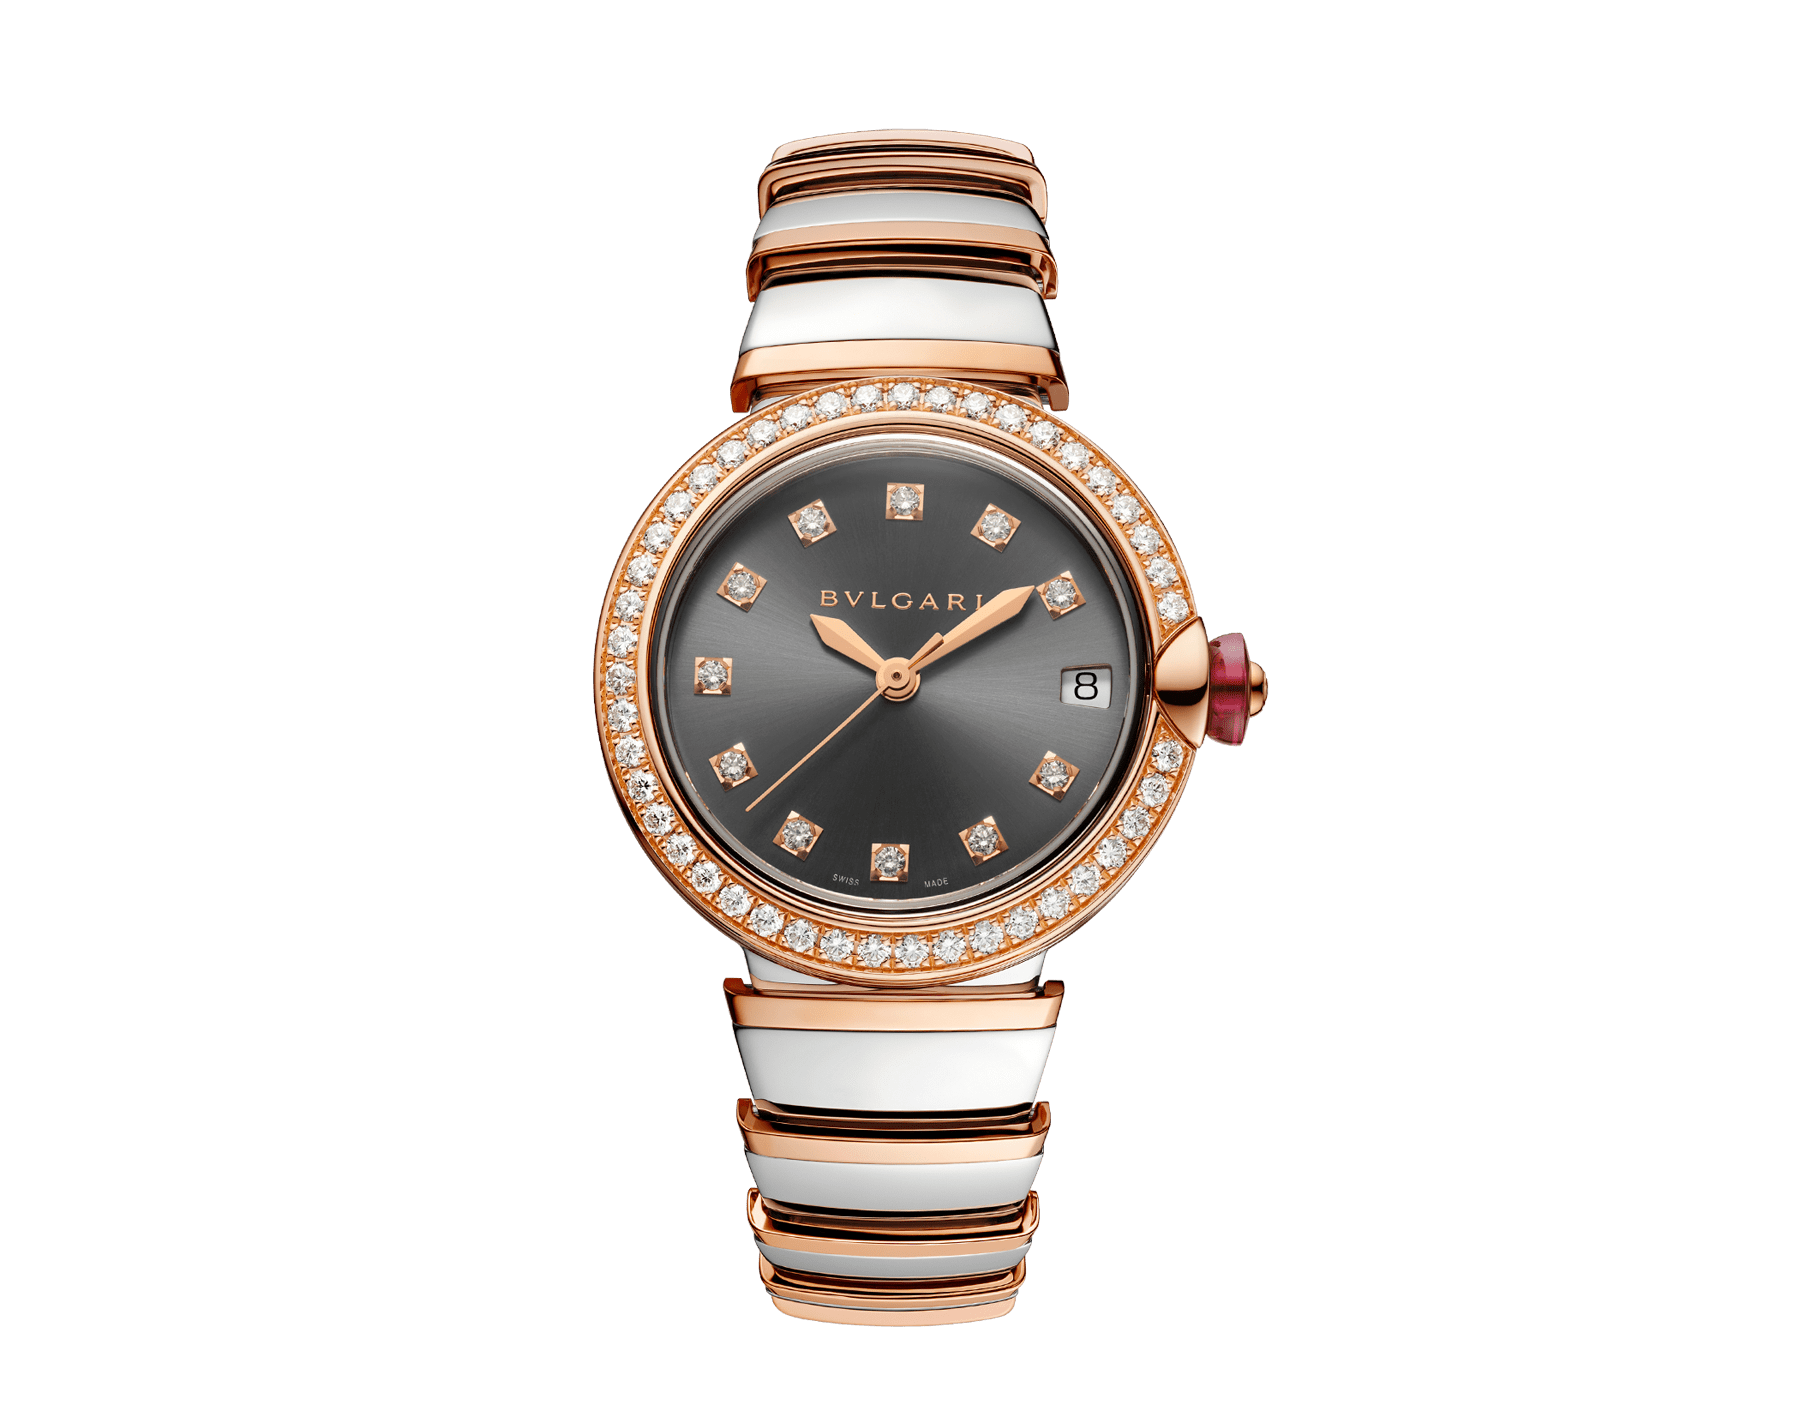 LVCEA watch with stainless steel case, 18 kt rose gold bezel set with diamonds, grey lacquered dial, diamond indexes, stainless steel and 18 kt rose gold bracelet 103029 image 1